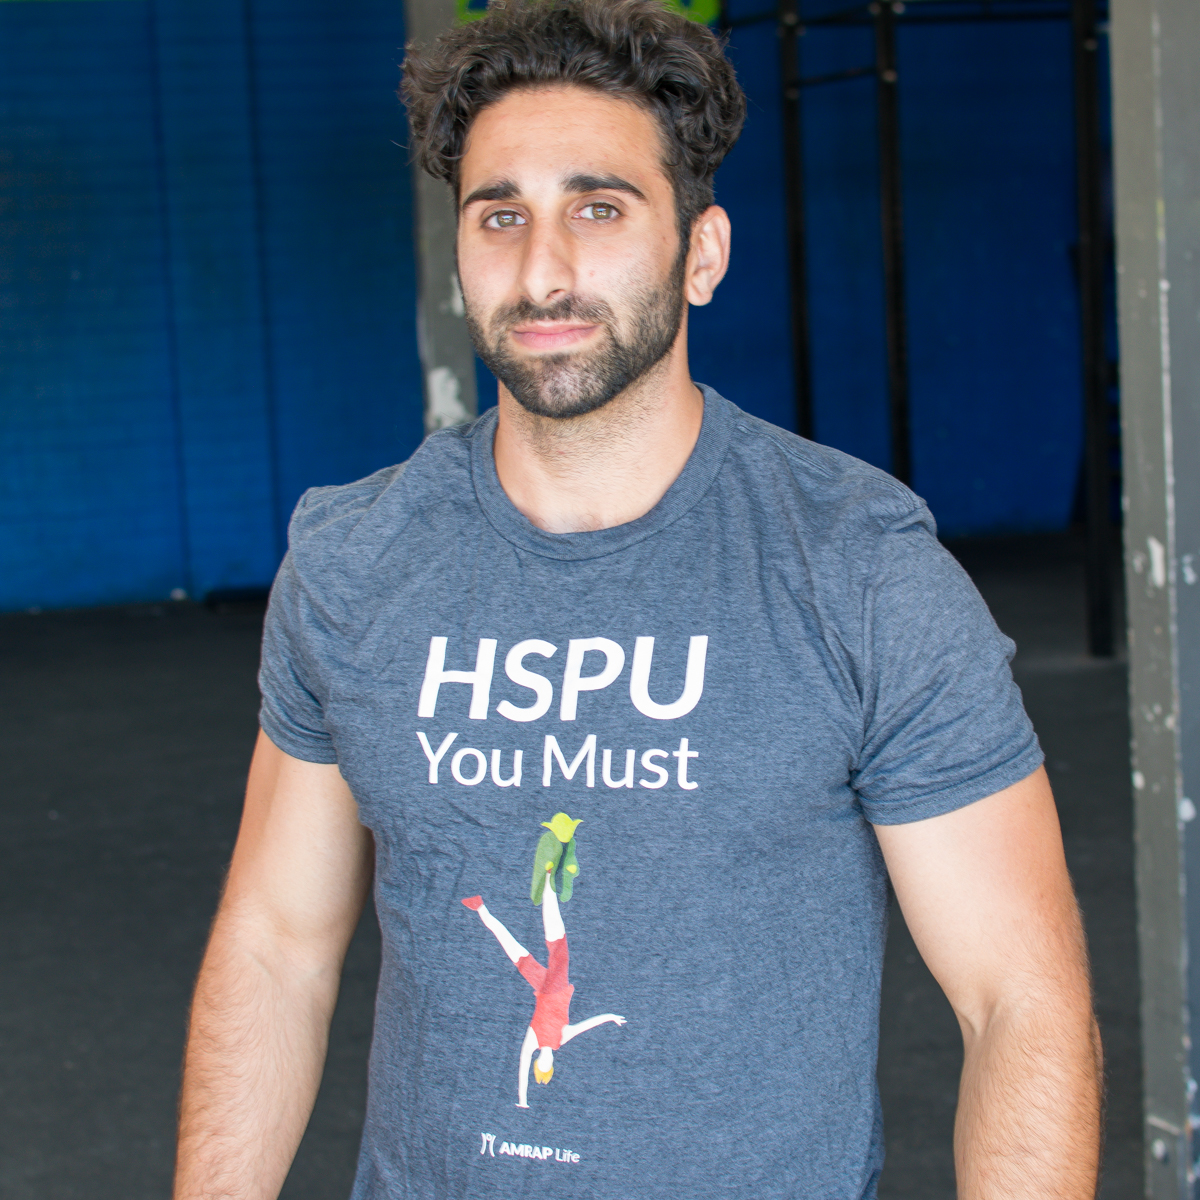 HSPU You Must Short Sleeve T-Shirt